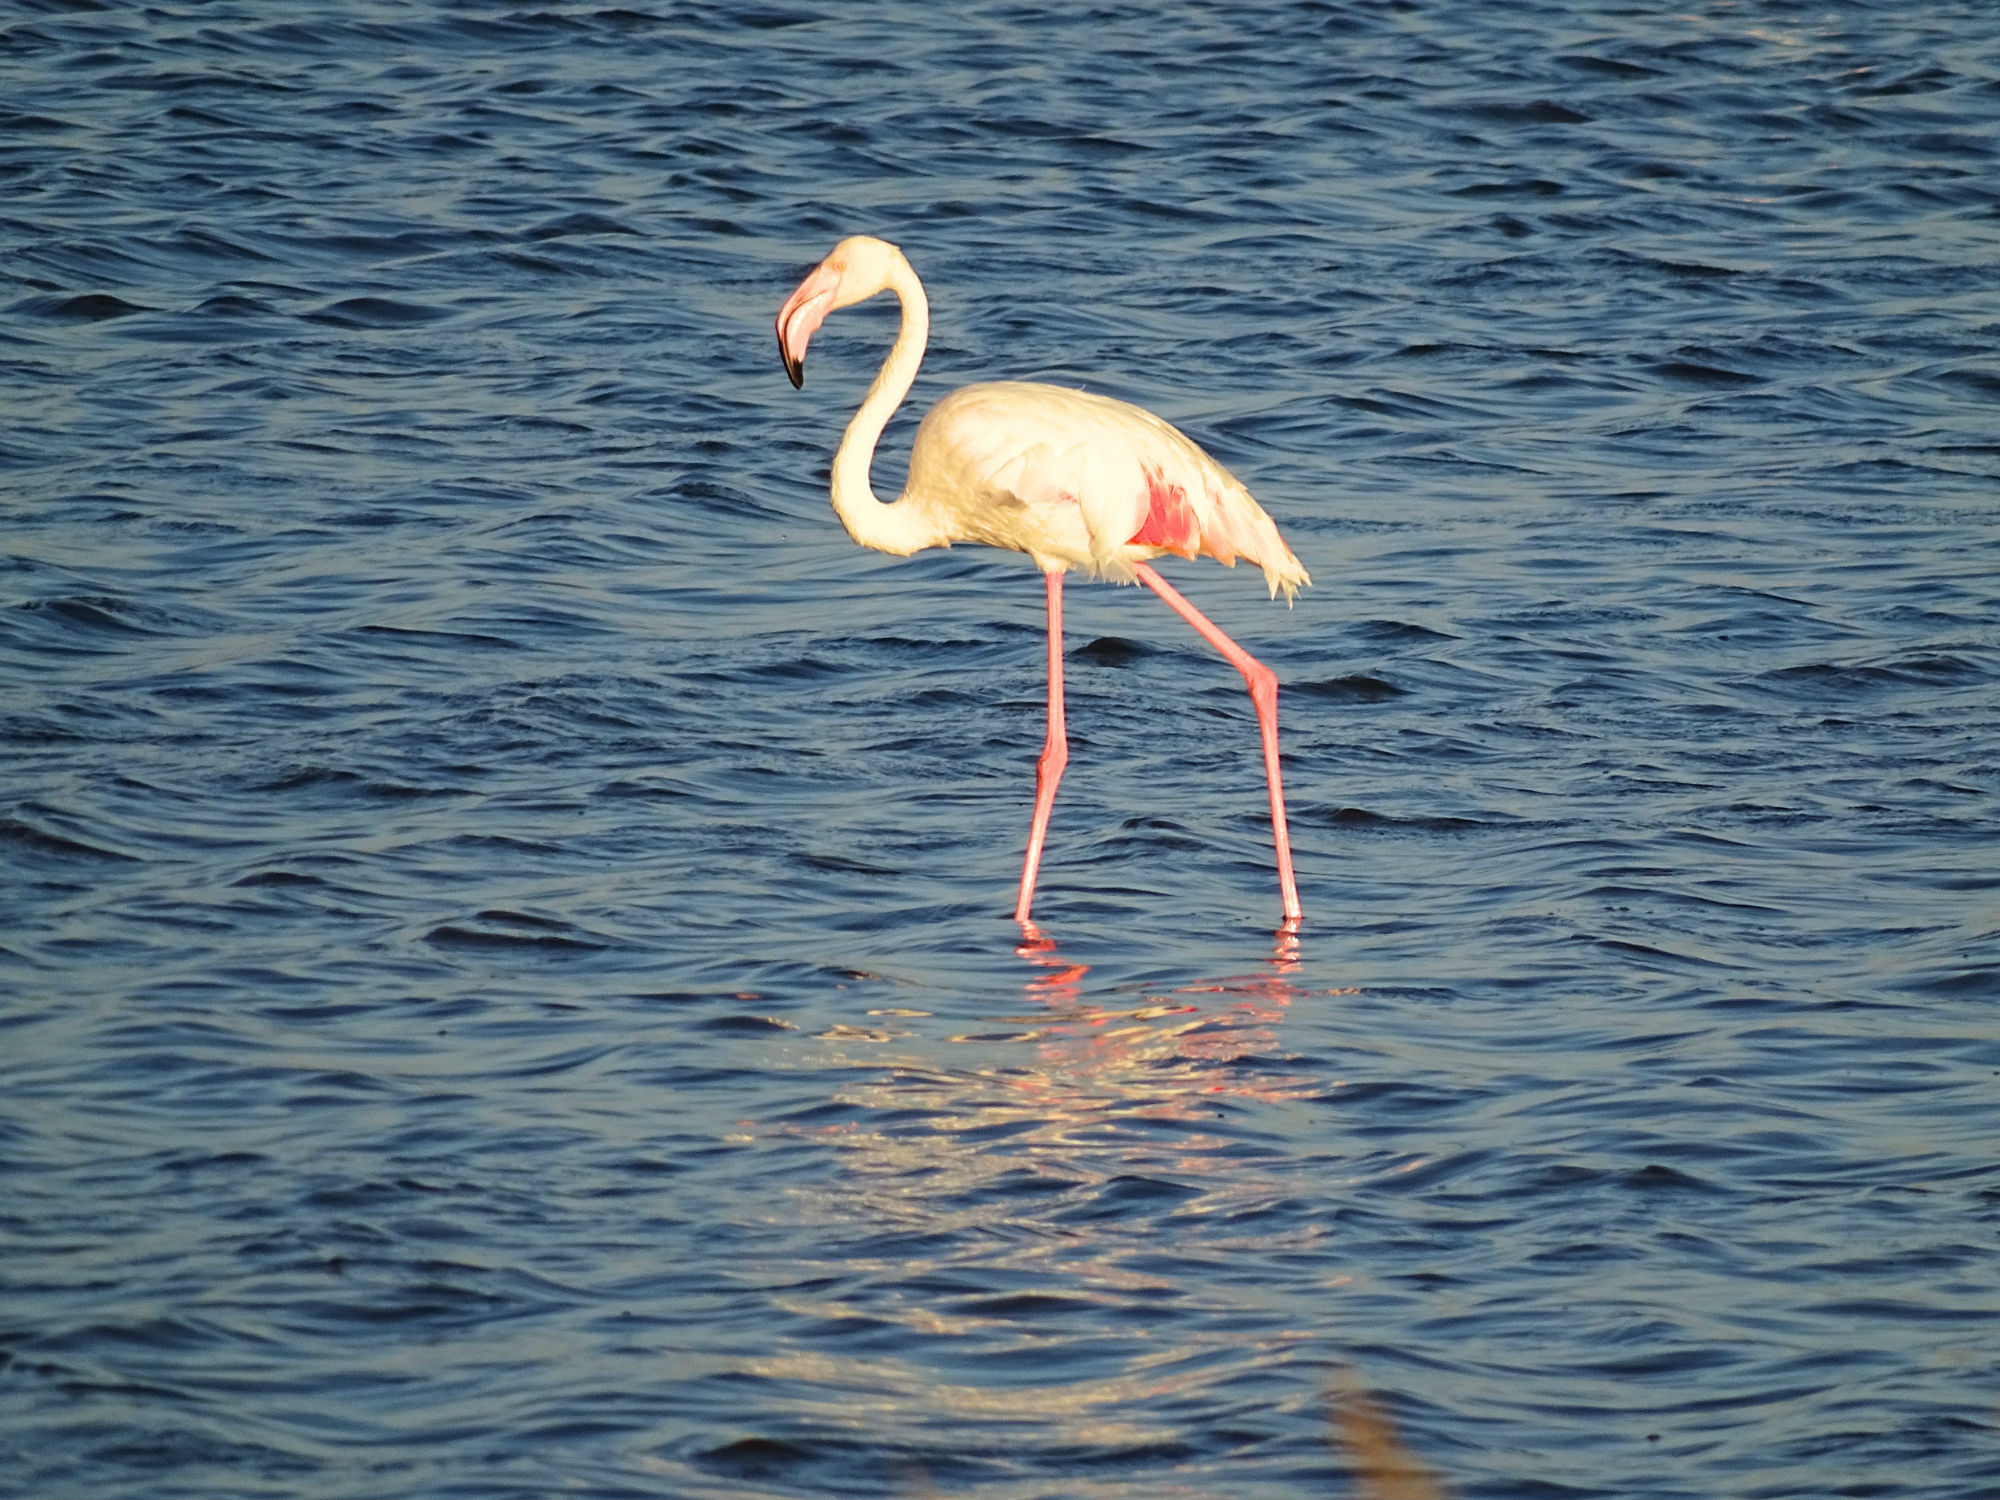 Flamingo in der Elends Bay Bucht